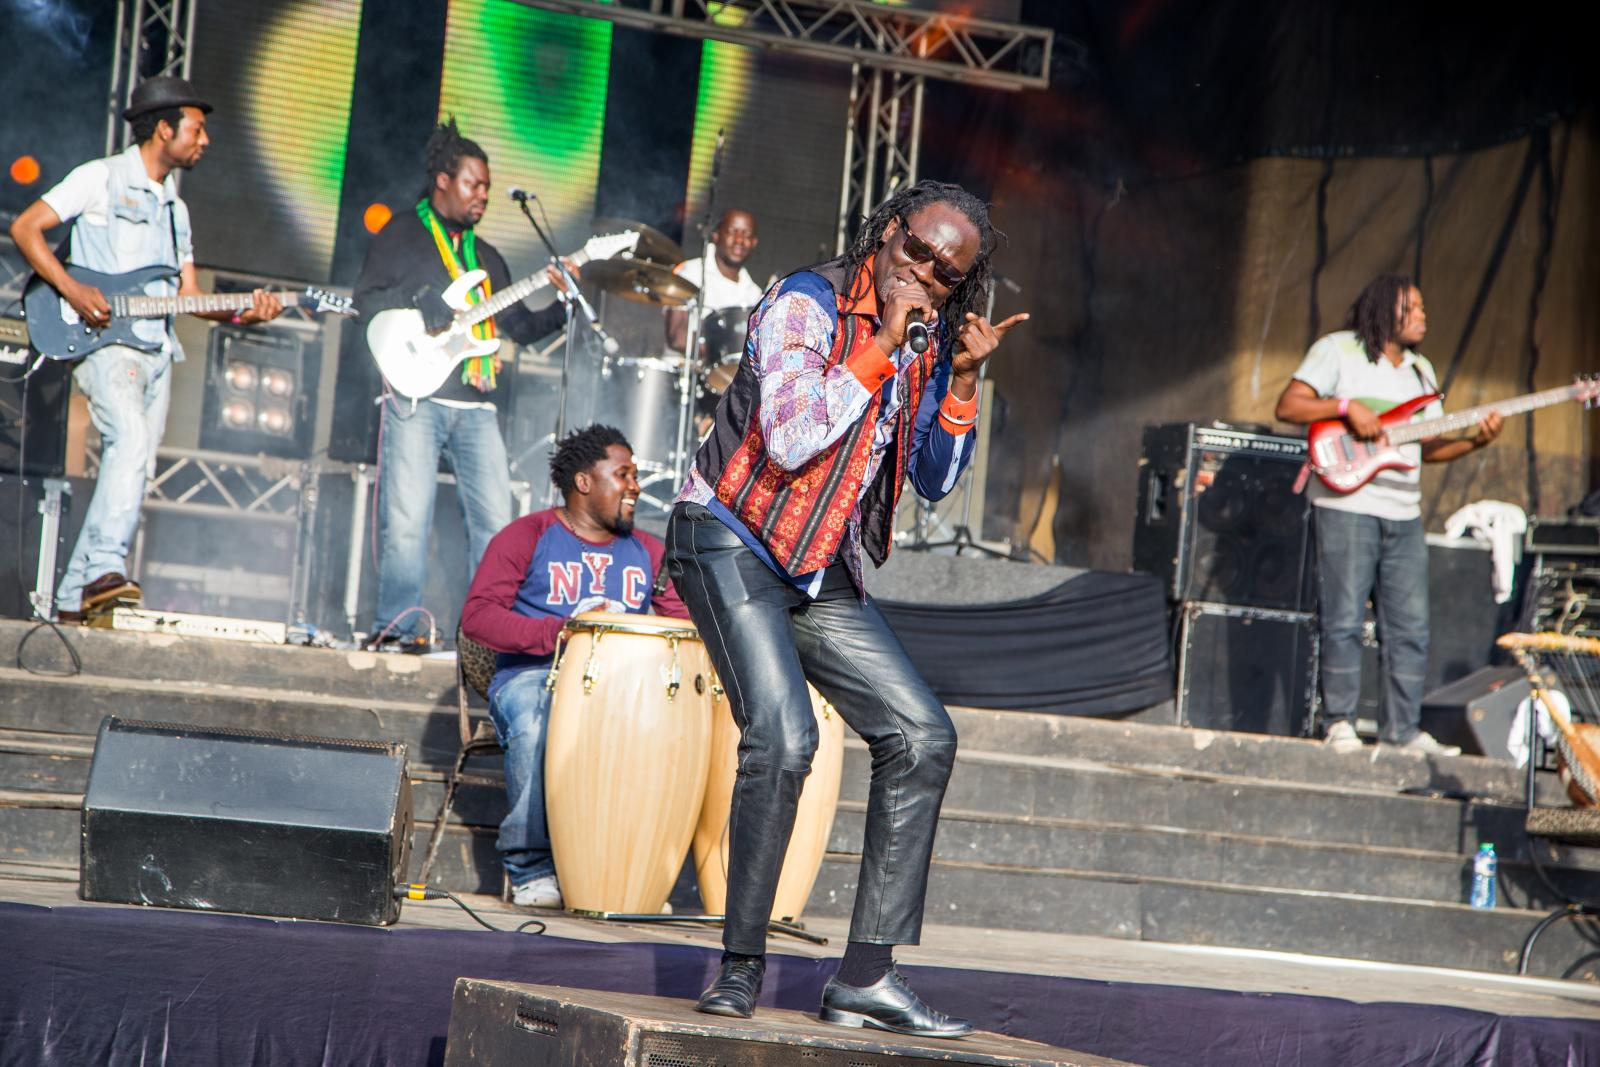 Makadem performs at Ankole Grill, marks his 2018 European tour return